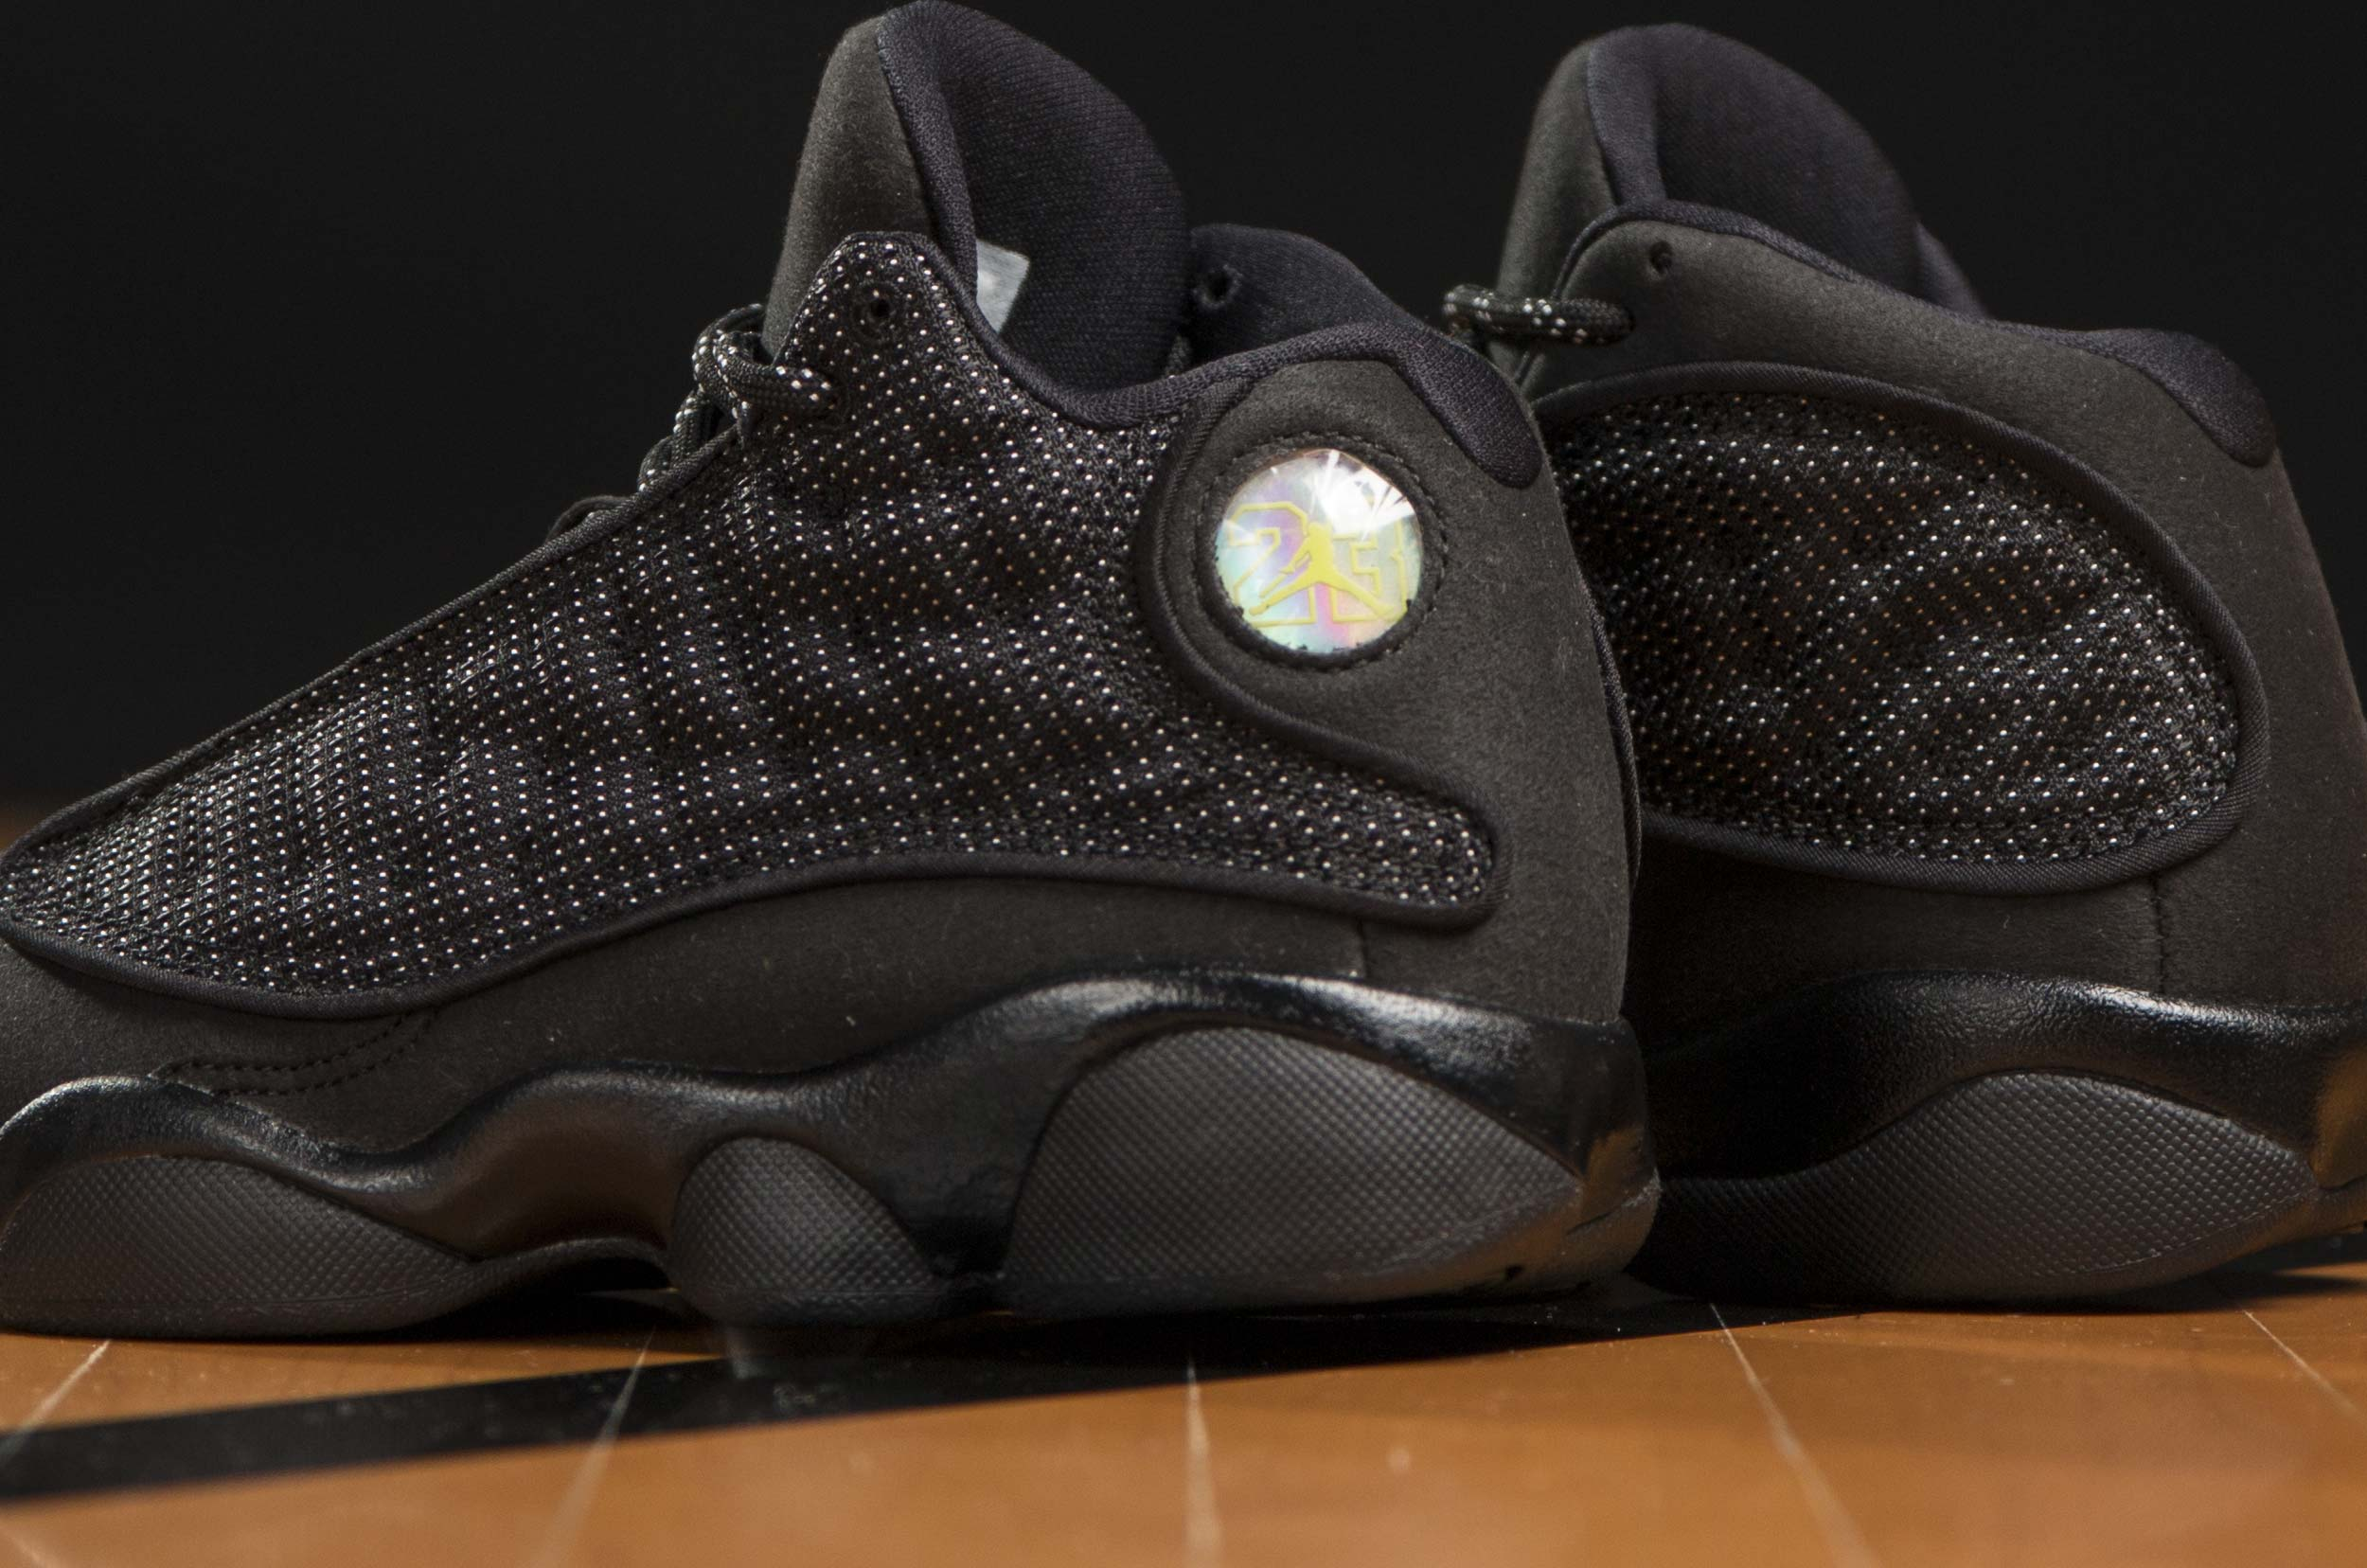 JORDAN 13 RETRO TXT BP PS 916907-011 Μαύρο